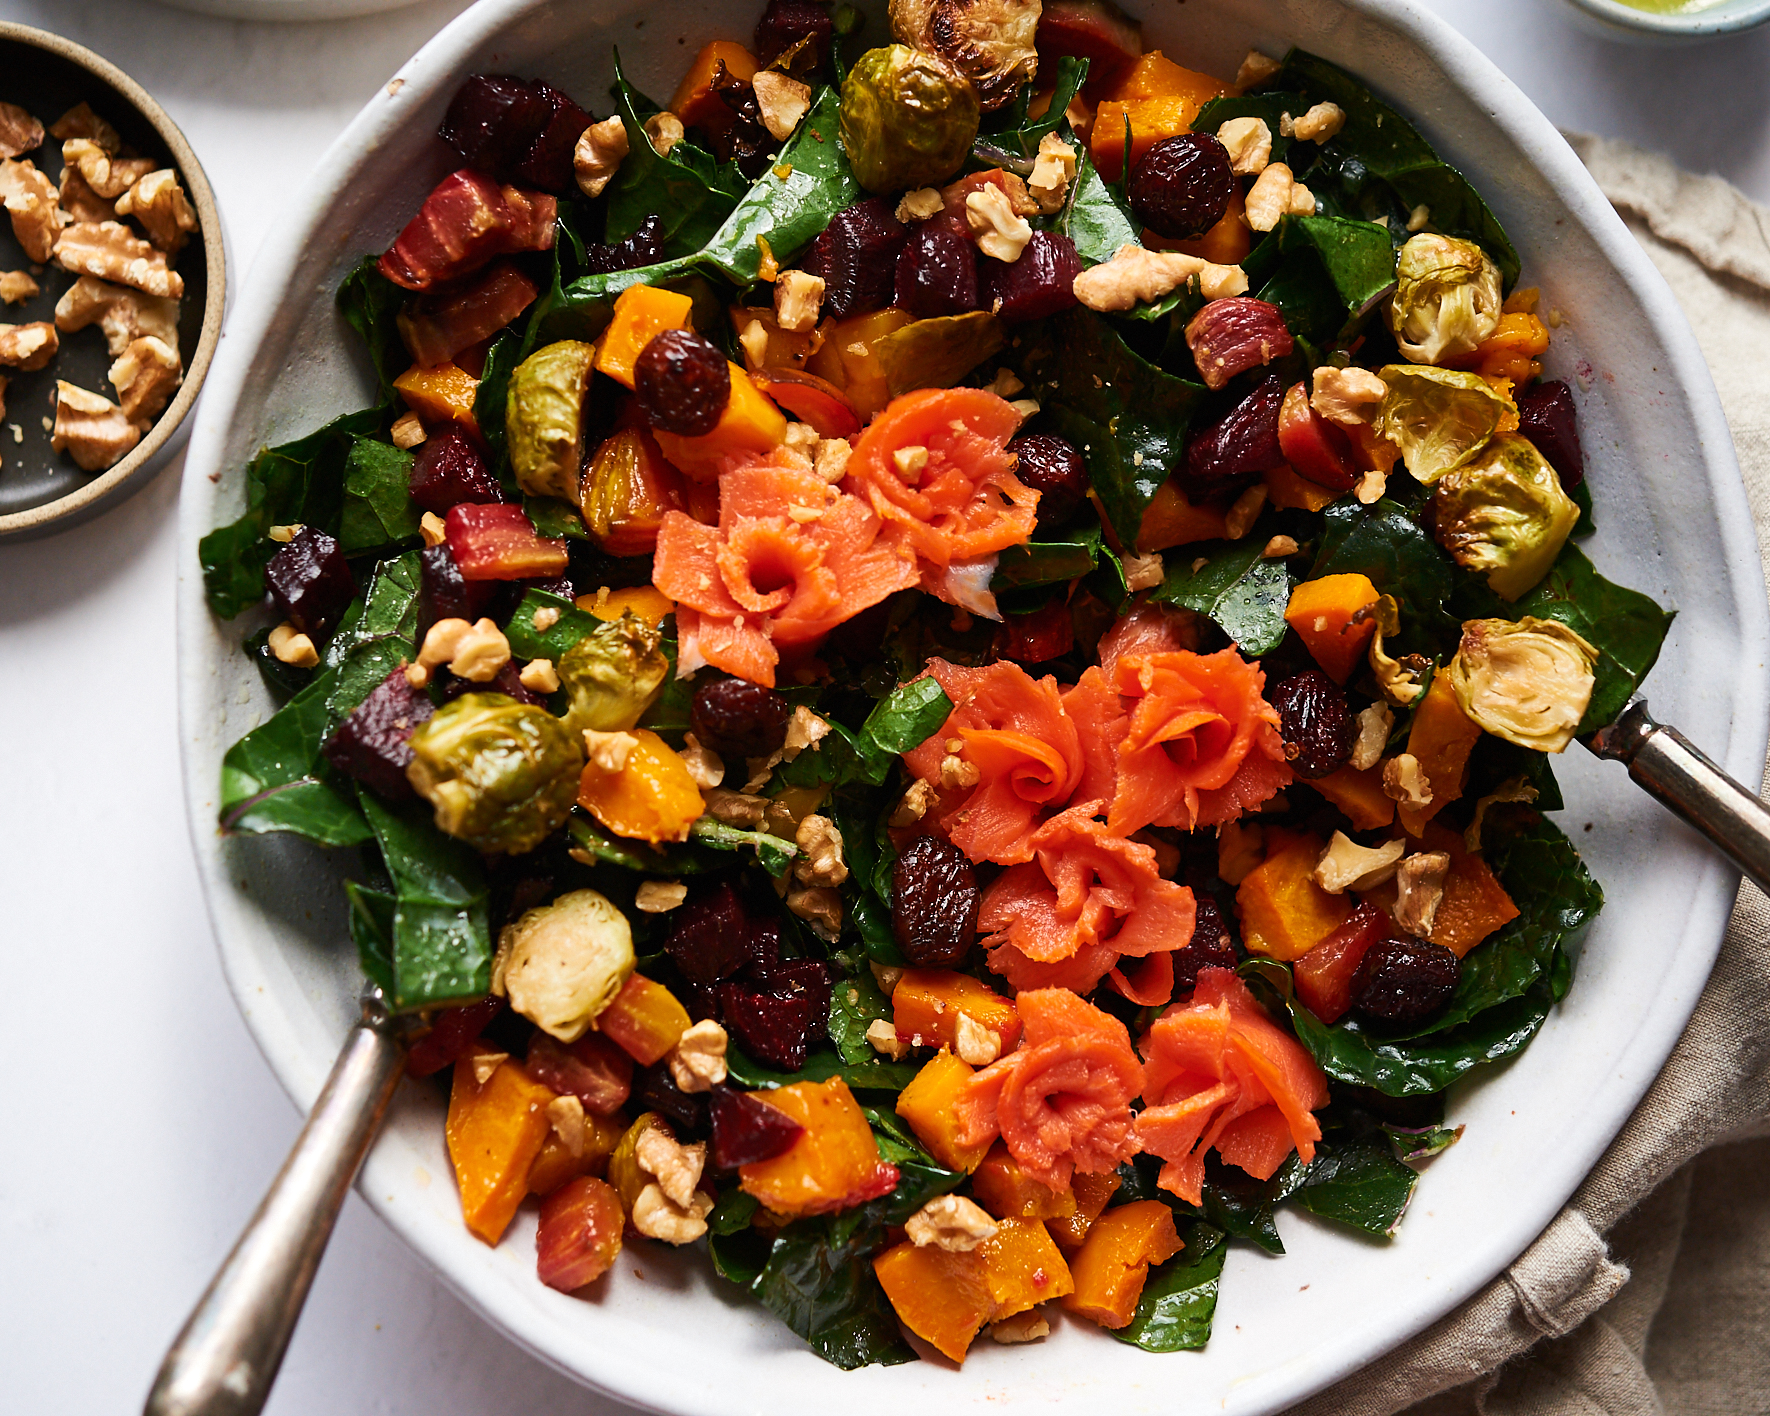 Brussels sprouts, butternut squash, beets and smoked salmon salad